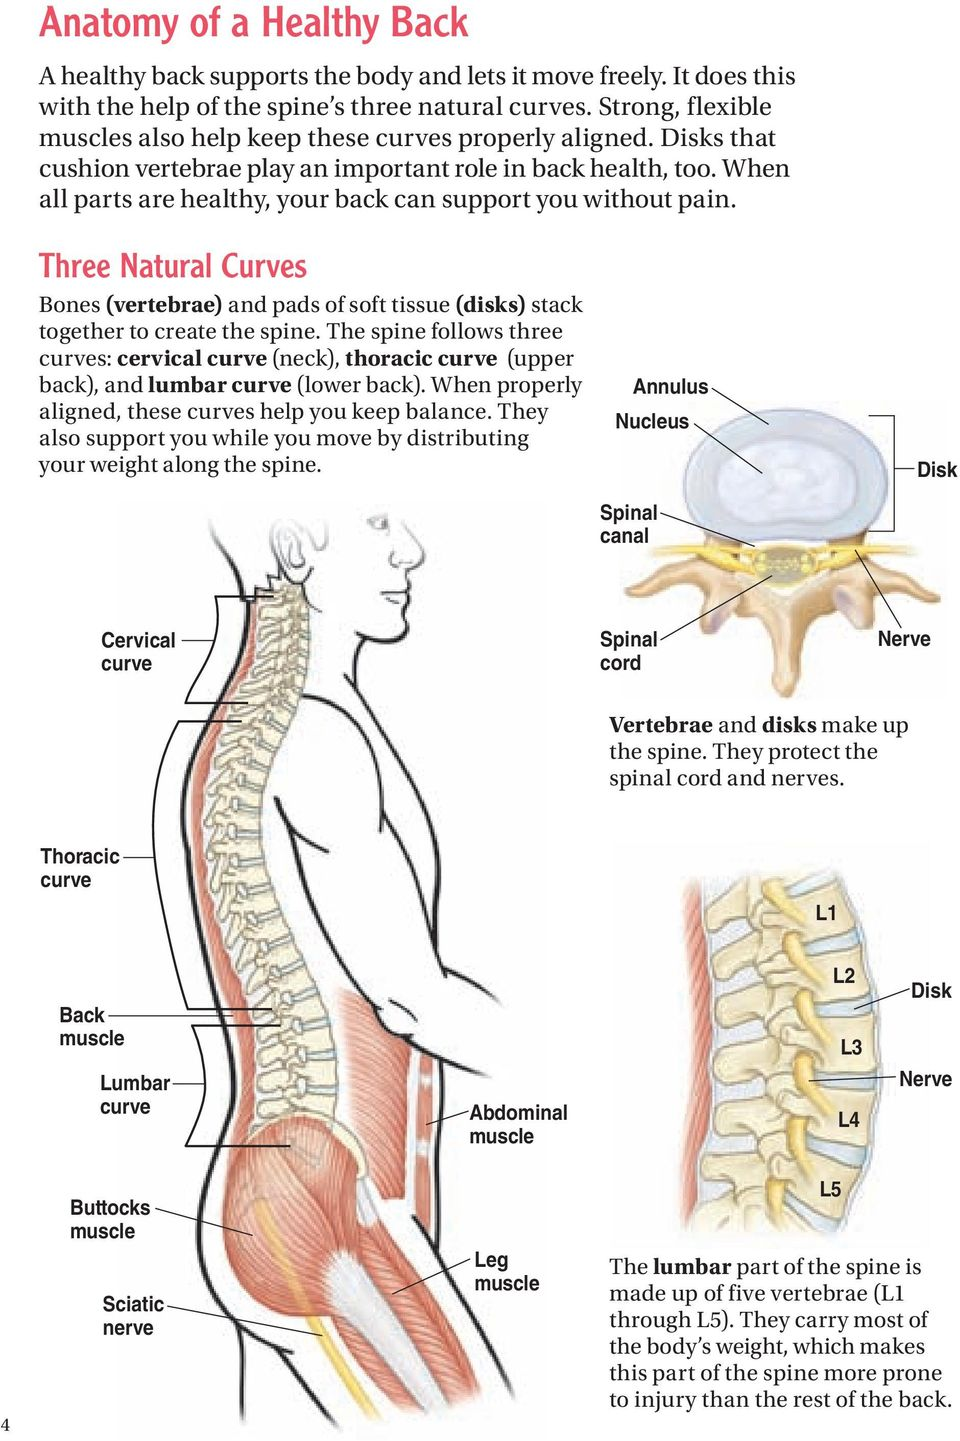 When all parts are healthy, your back can support you without pain. Three Natural Curves Bones (vertebrae) and pads of soft tissue (disks) stack together to create the spine.